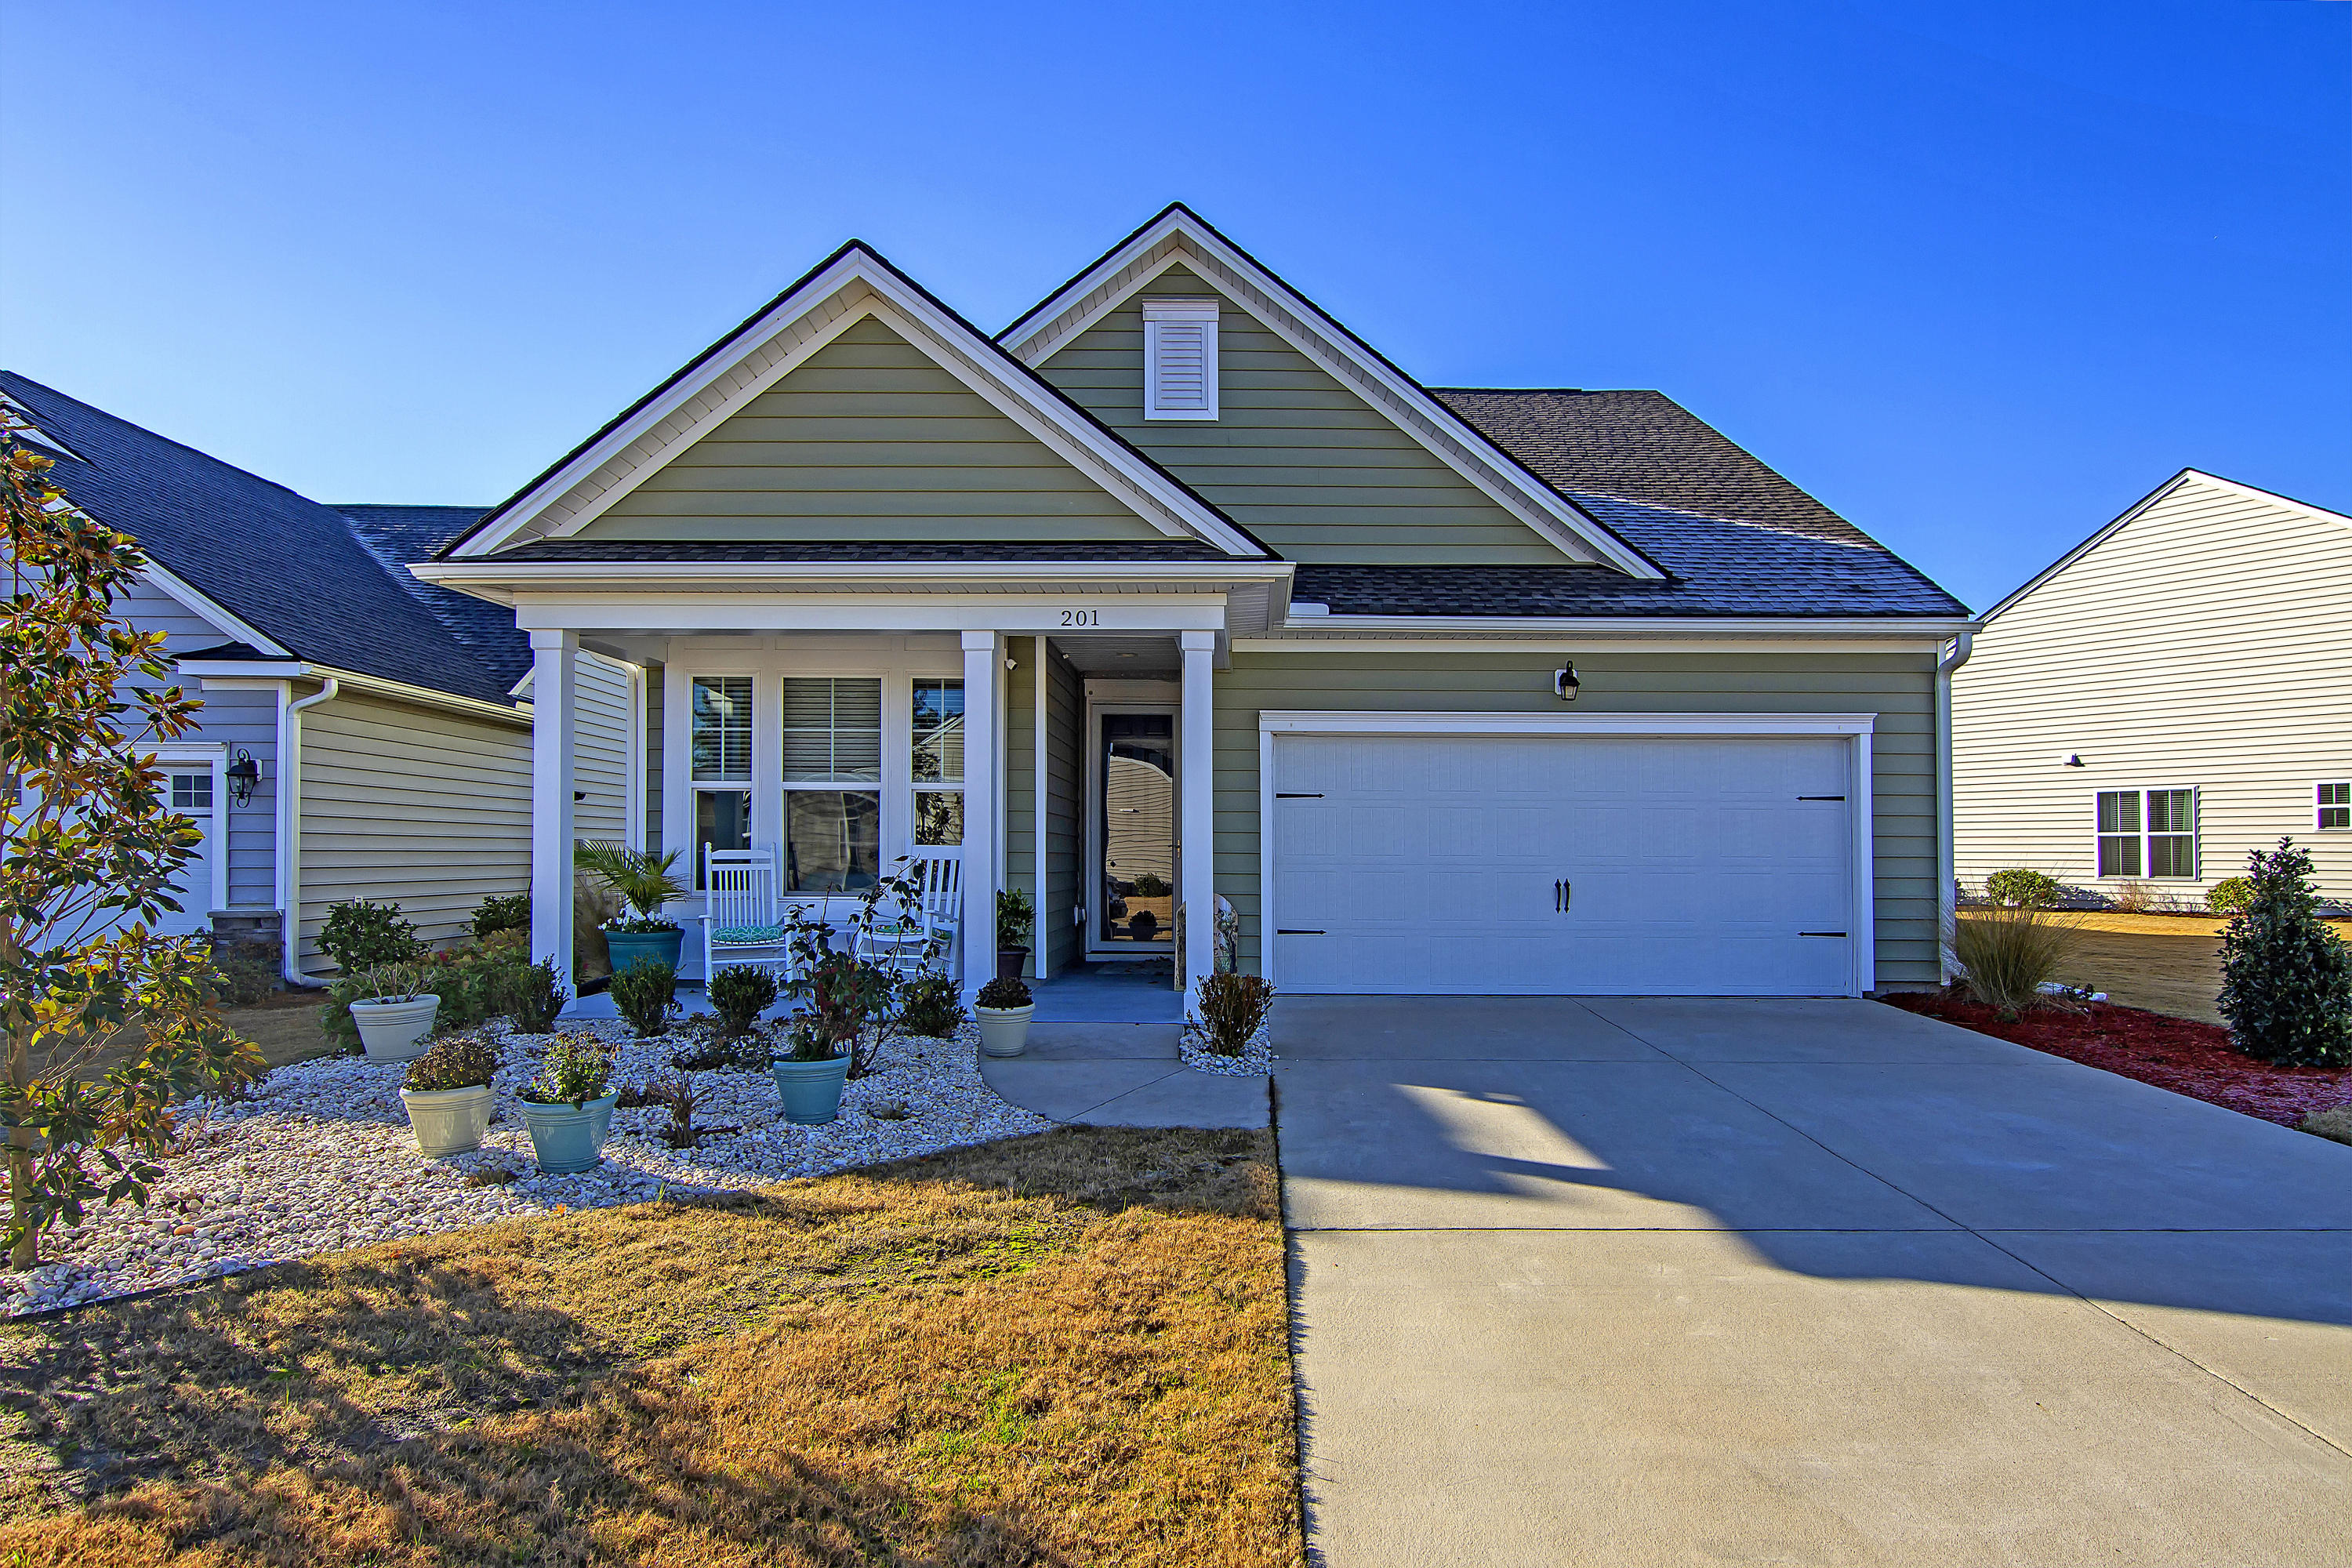 201 Fall Crossing Place Summerville, SC 29486